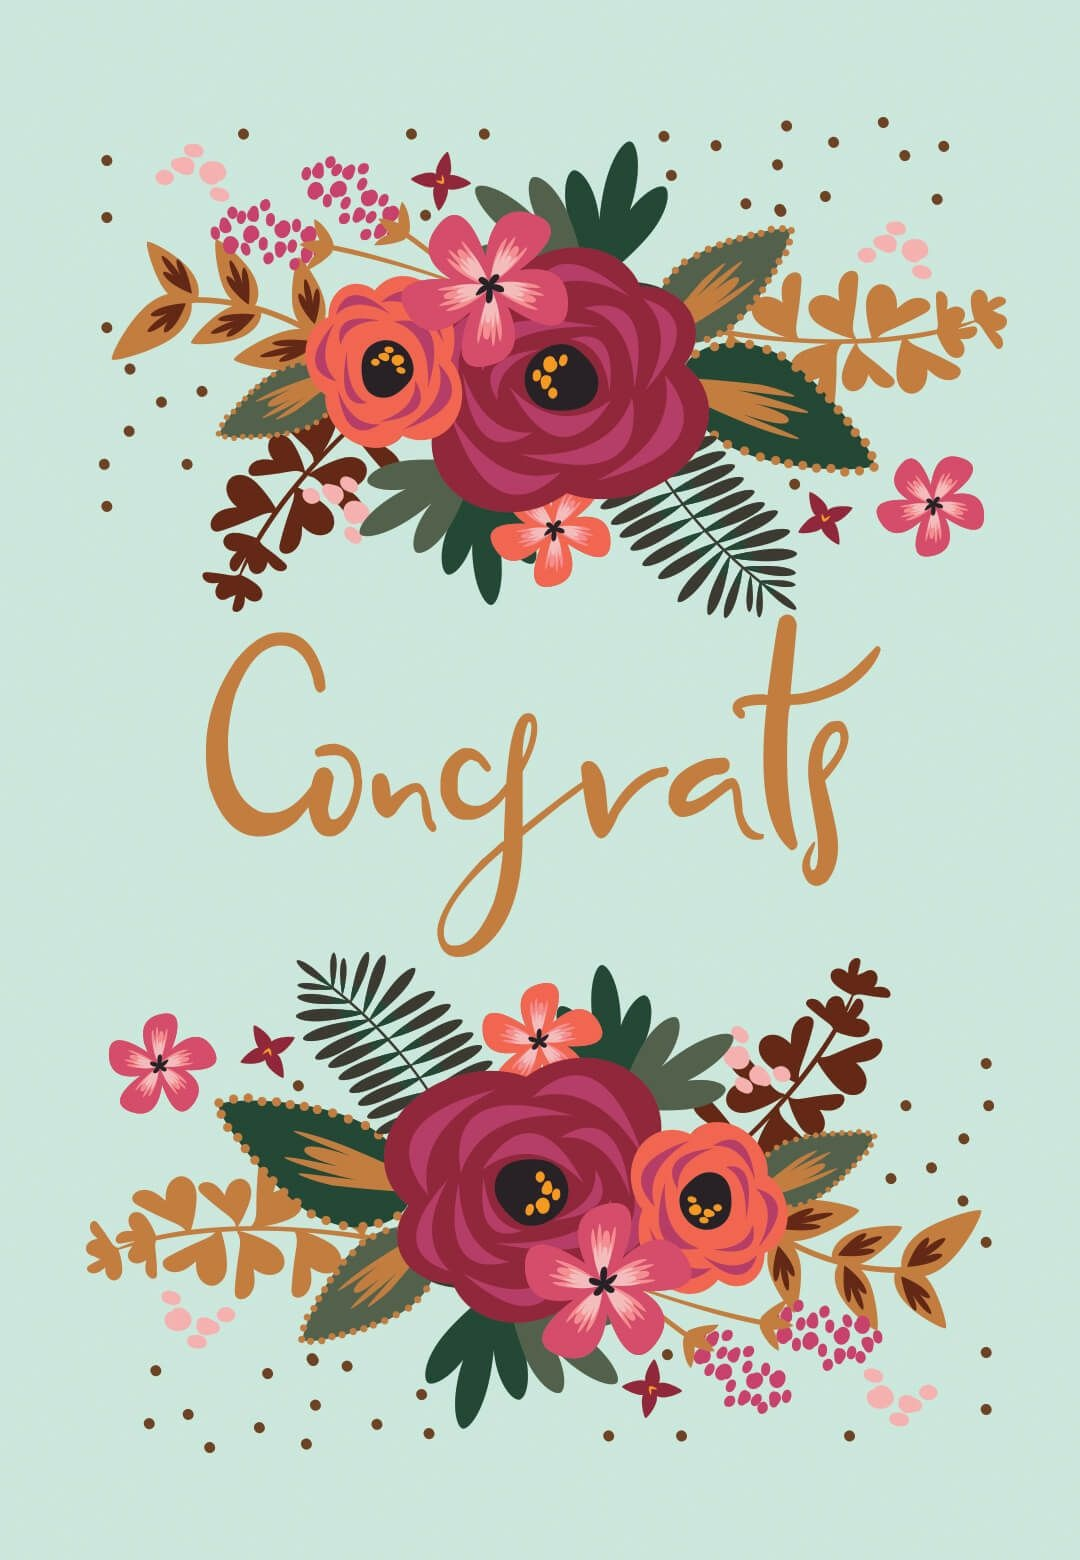 Floral Congrats - Free Printable Wedding Congratulations Card - Free Printable Wedding Shower Greeting Cards